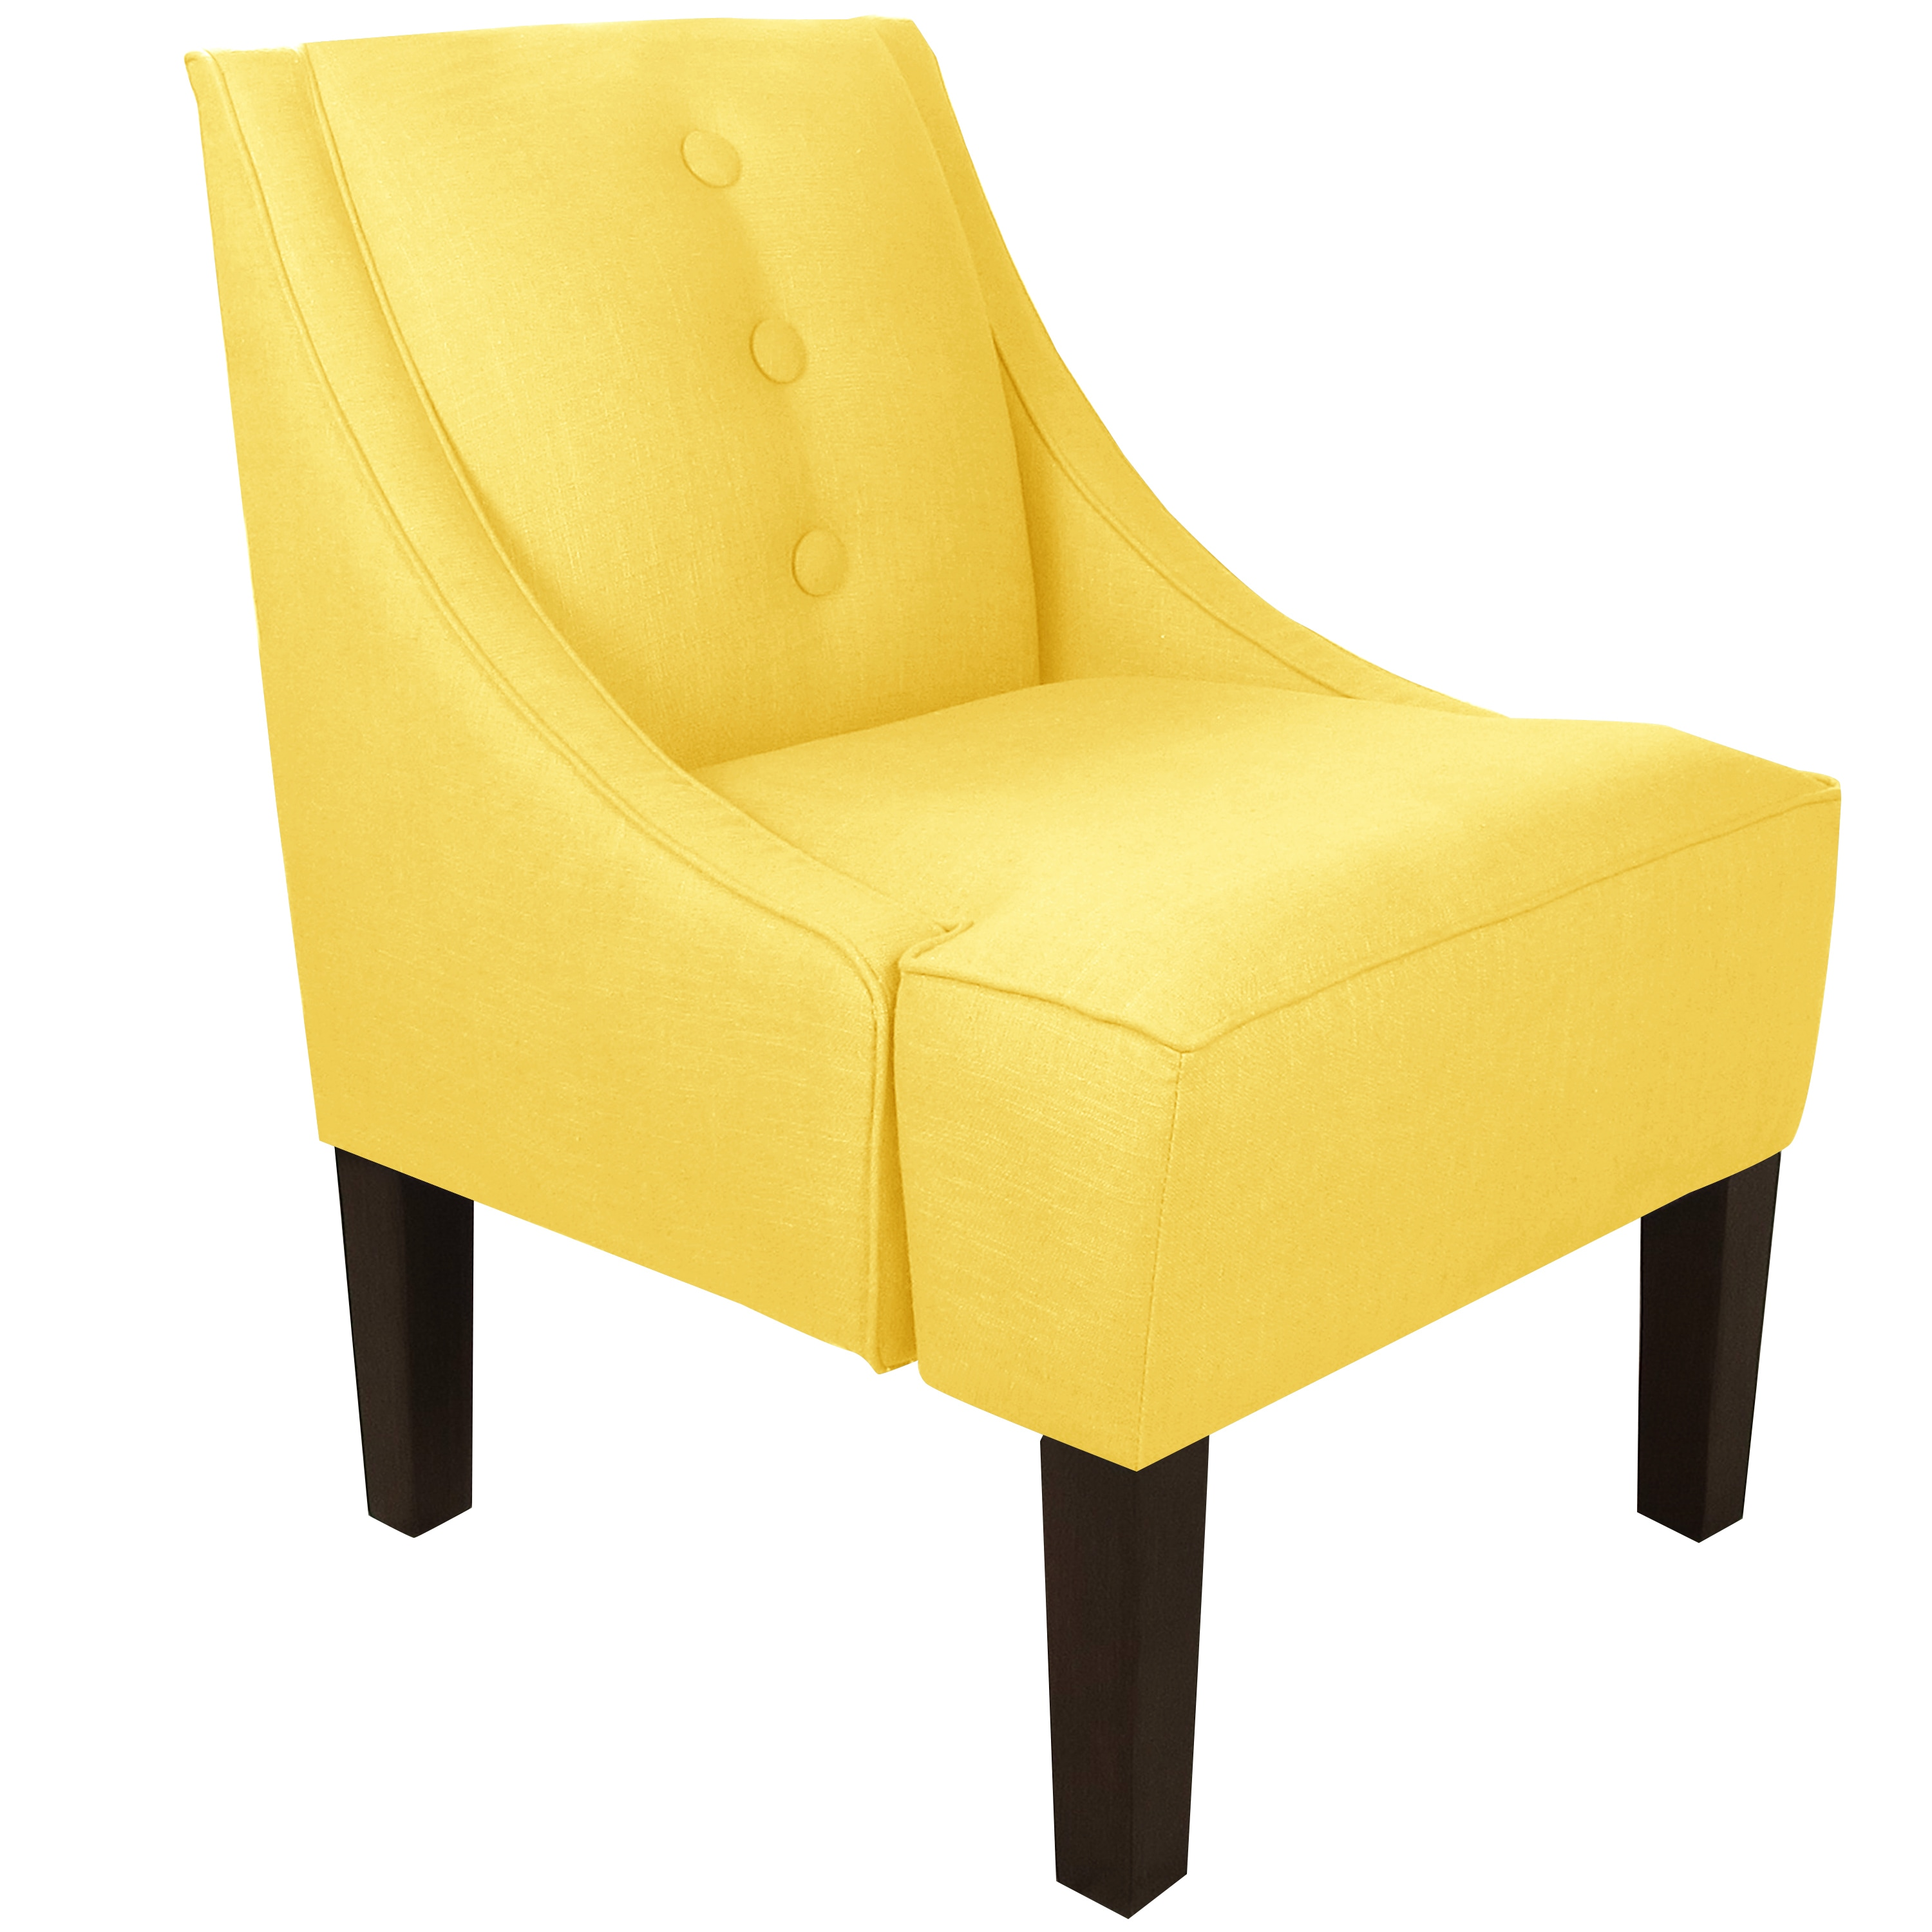 overstock arm chair leather chairs and ottomans made to order yellow three button swoop with